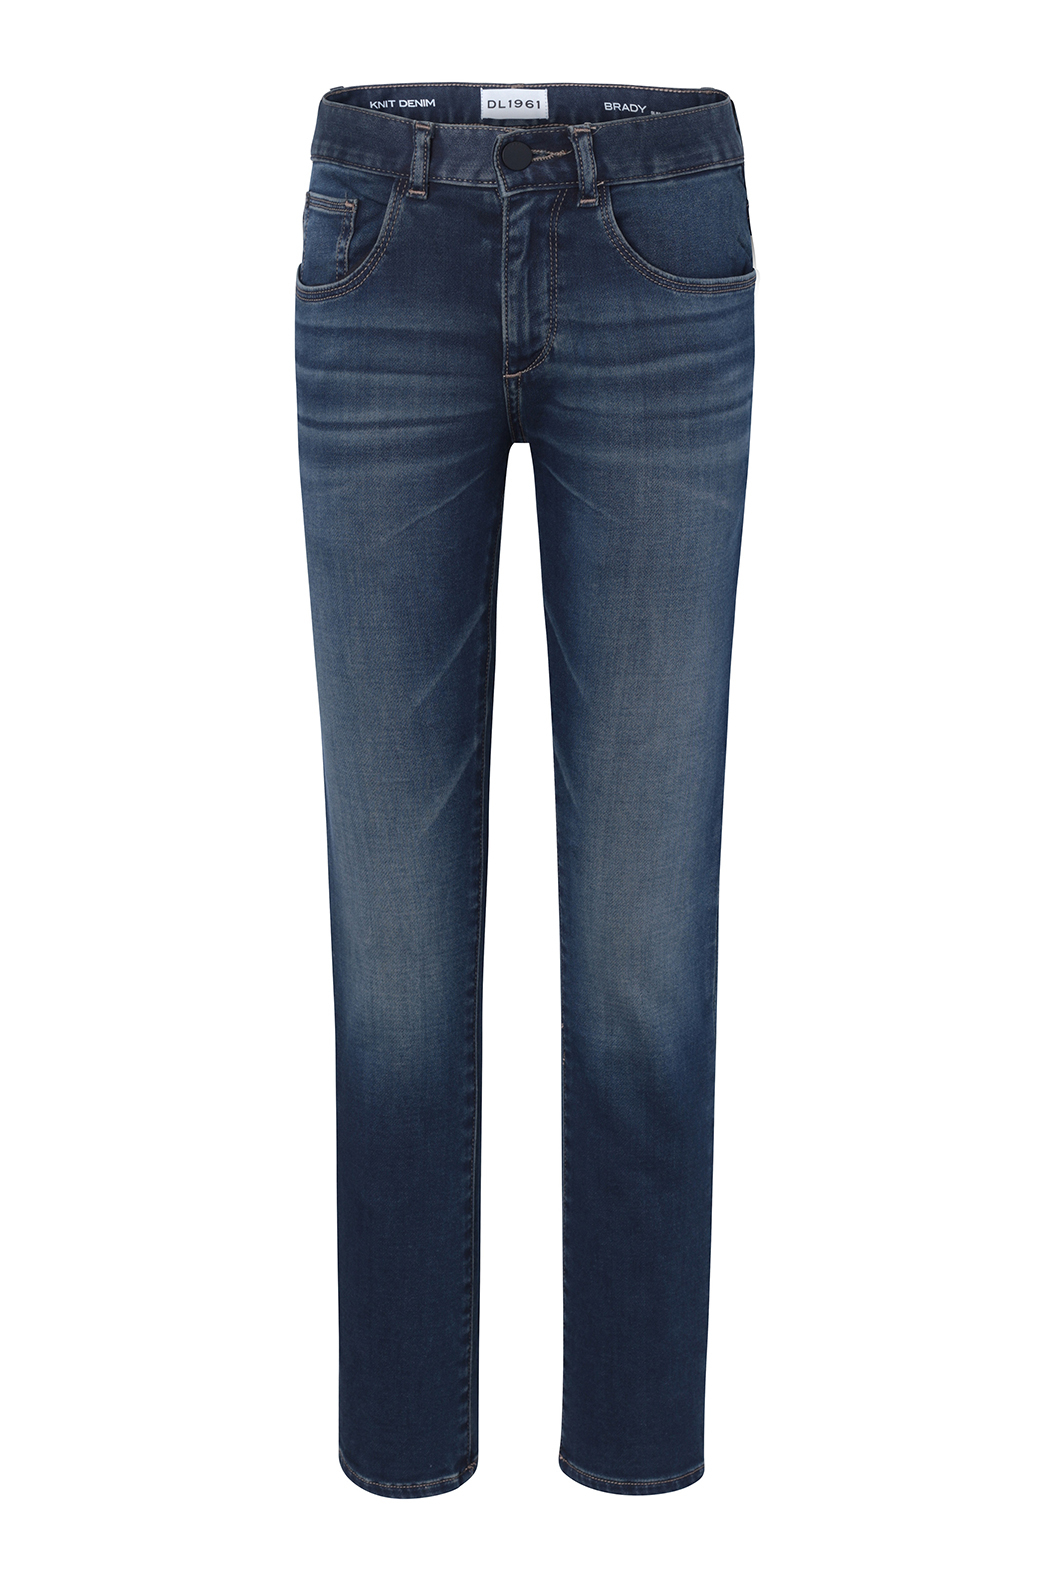 DL1961 Brady Slim Jeans 4190 - Front Cropped Image